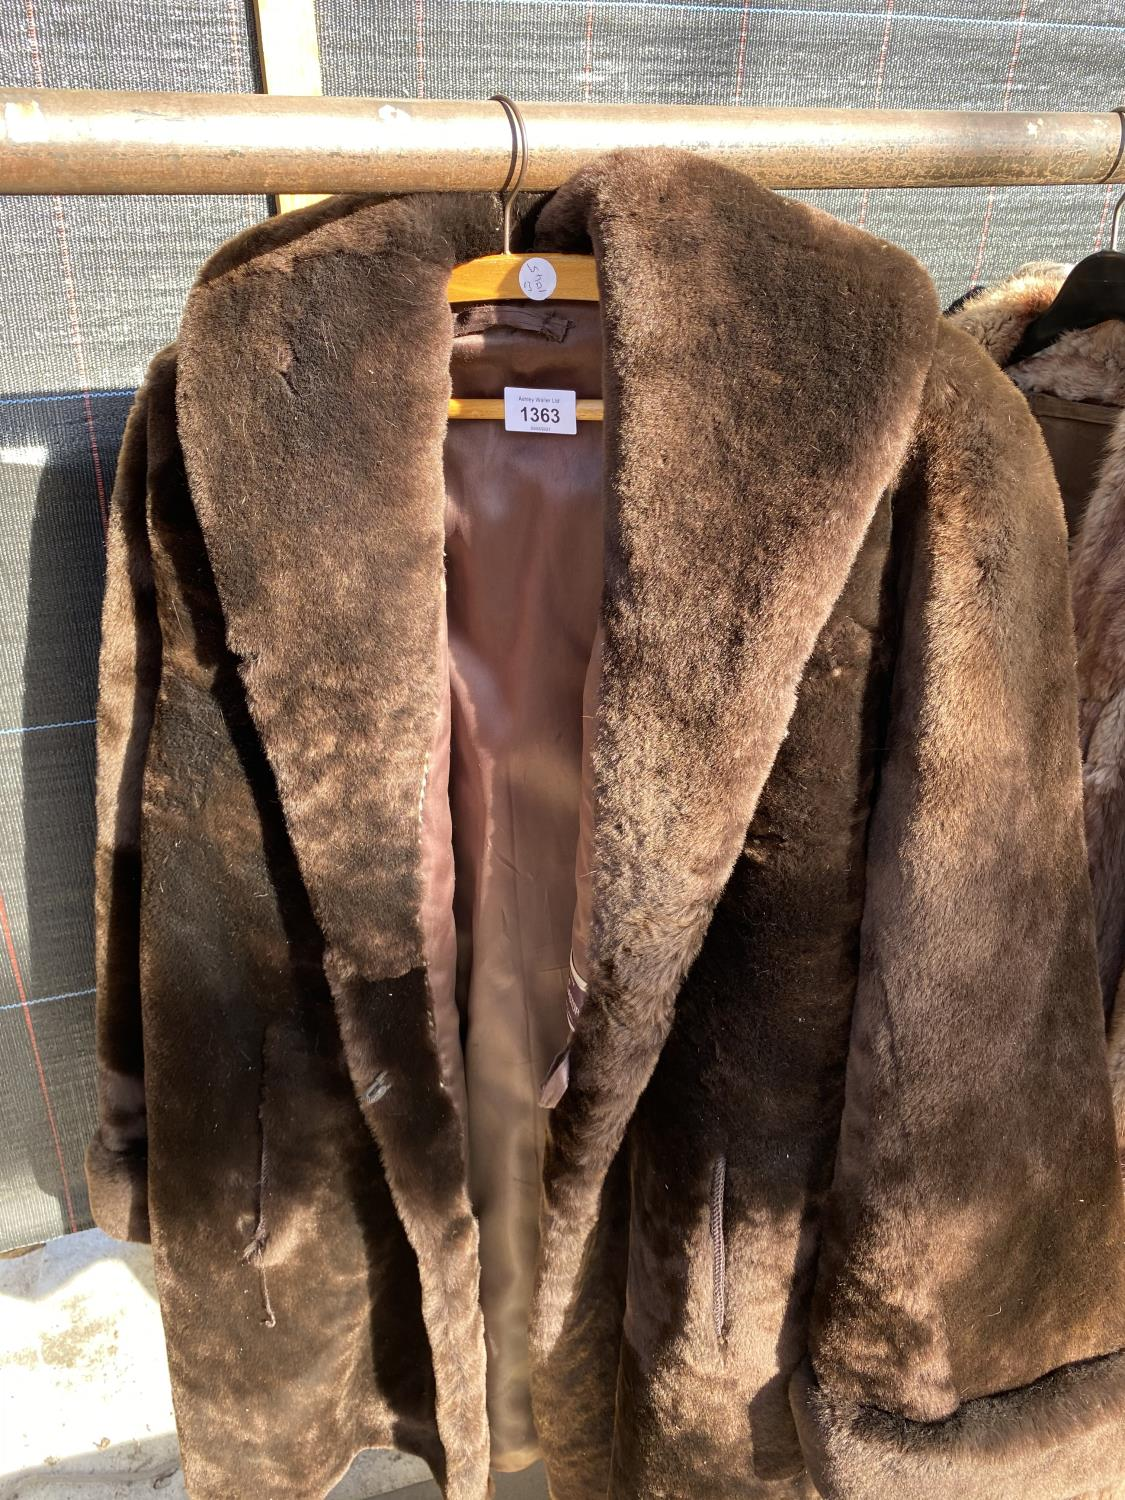 A GROUP OF FOUR COATS AND JACKETS TO INCLUDE A SHEEP SKIN COAT ETC - Image 3 of 7